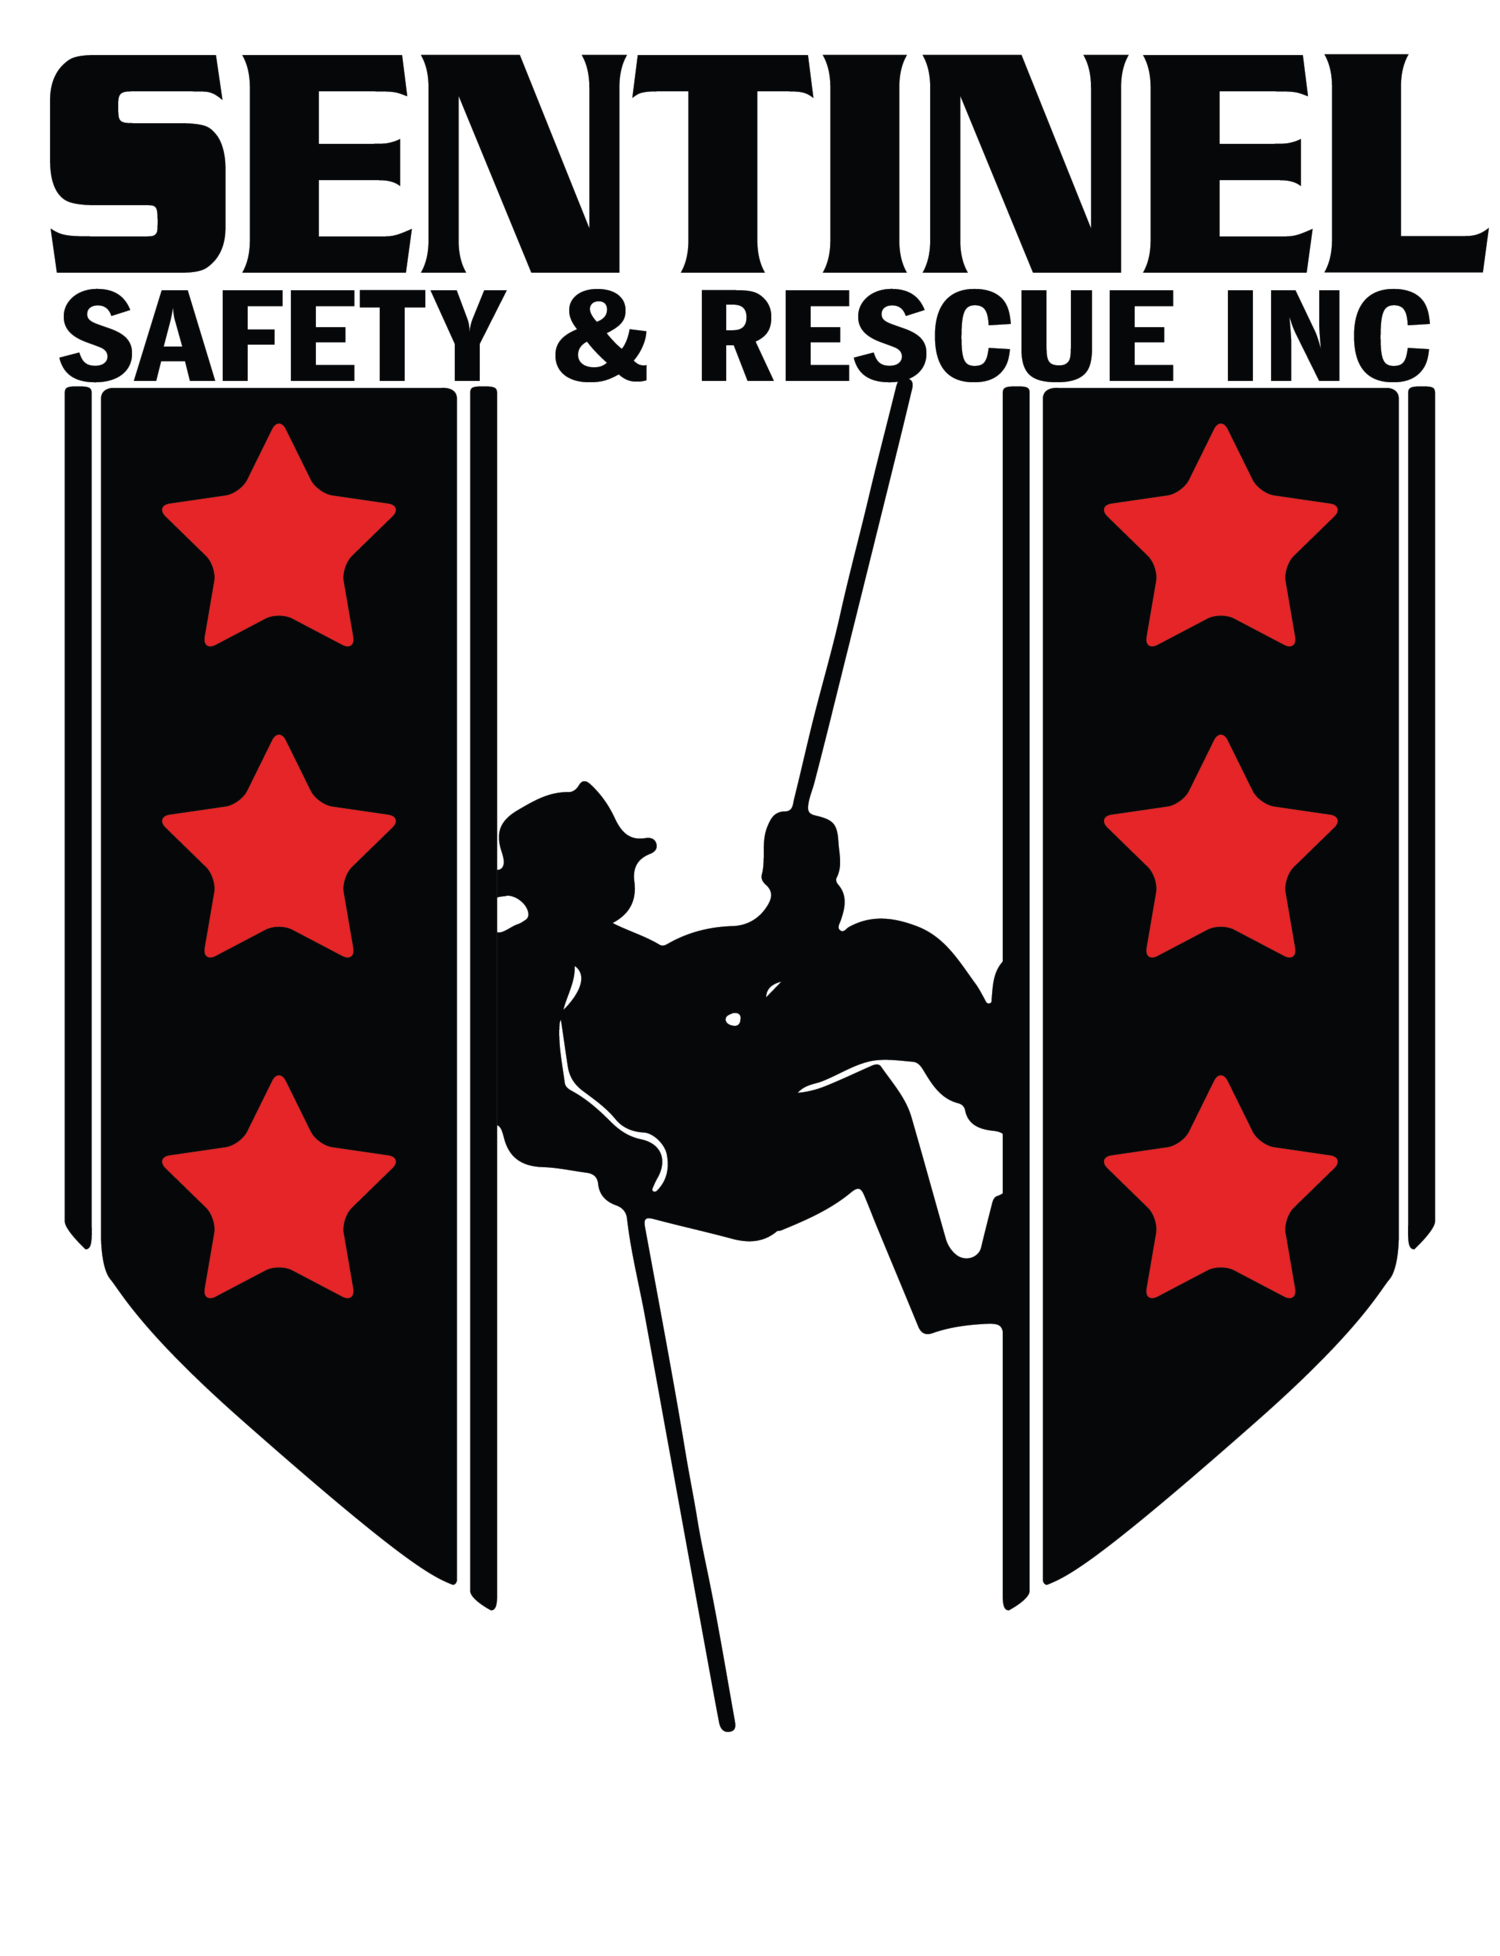 Sentinel Safety & Rescue